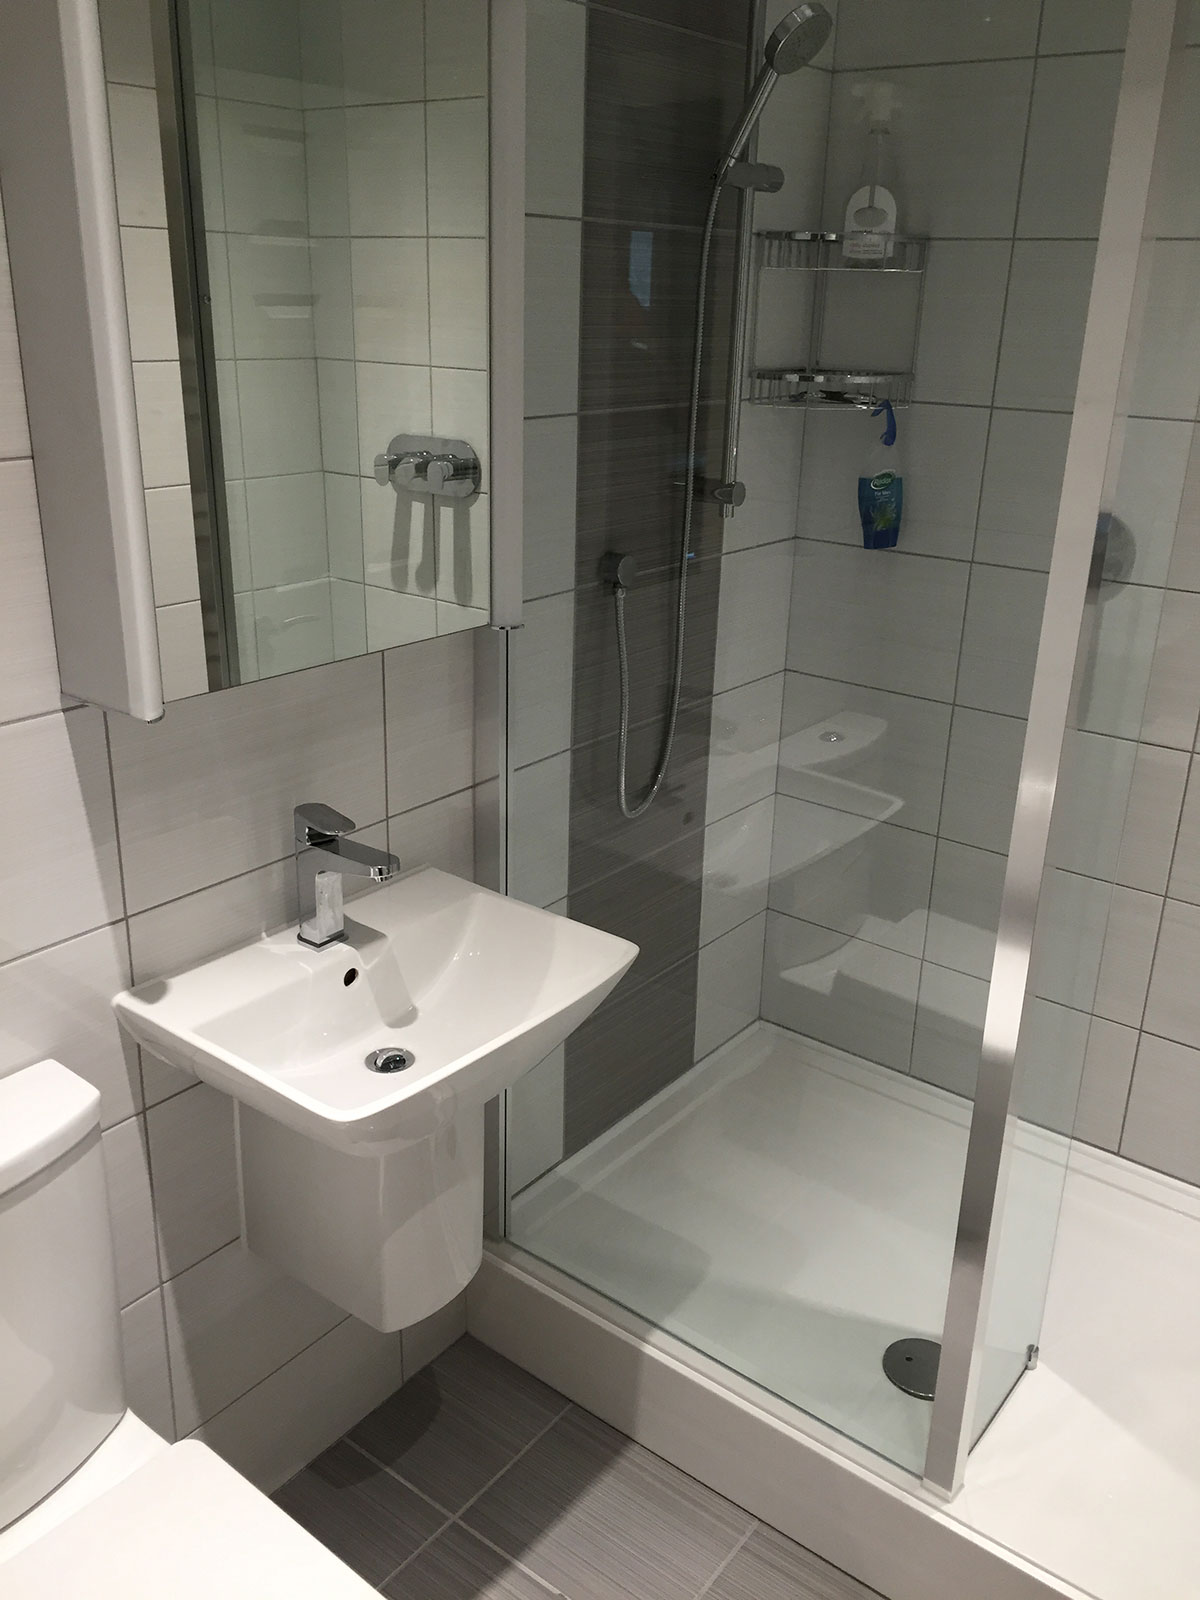 Shower & sink unit